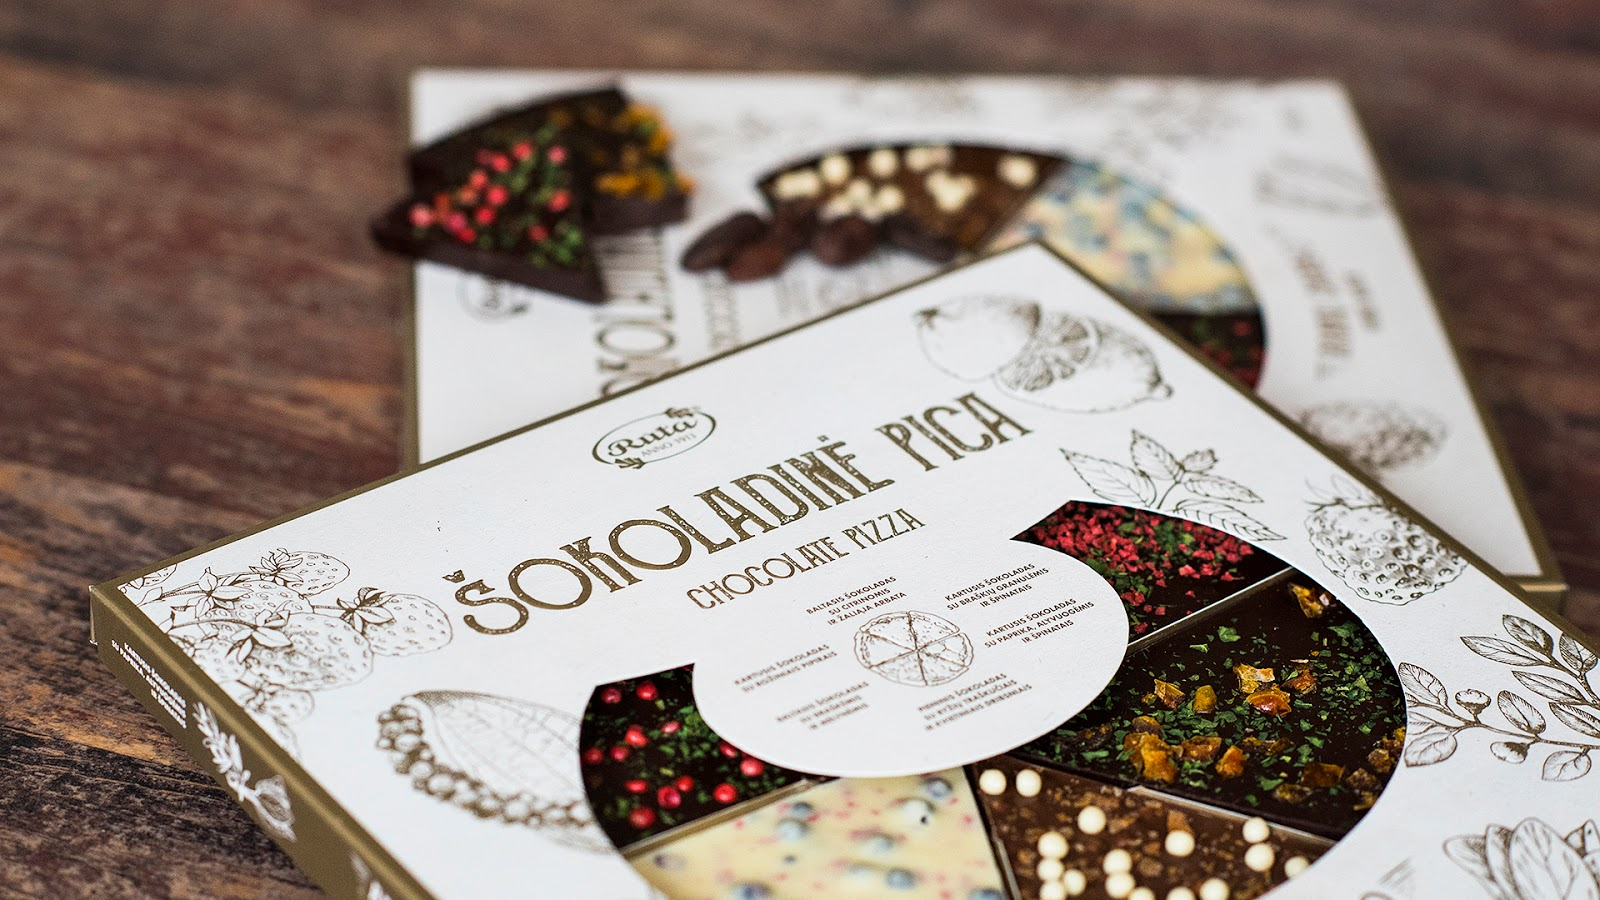 design  top 5 des packagings de tablettes de chocolat